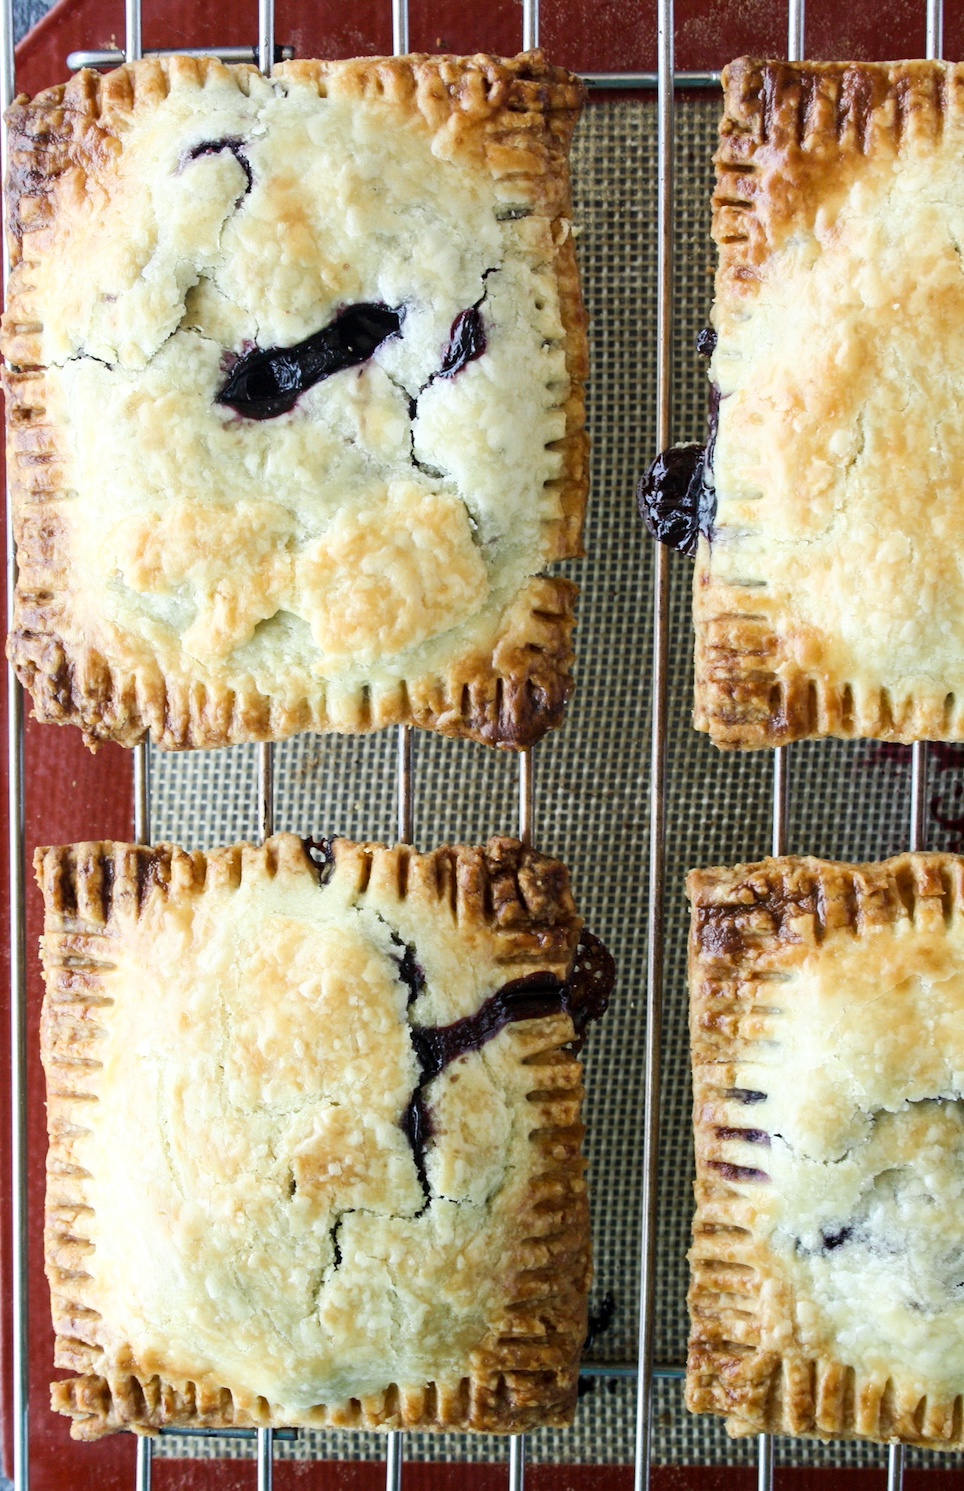 Buttery, flaky pop tarts with blueberry filling and tangy lemon glaze